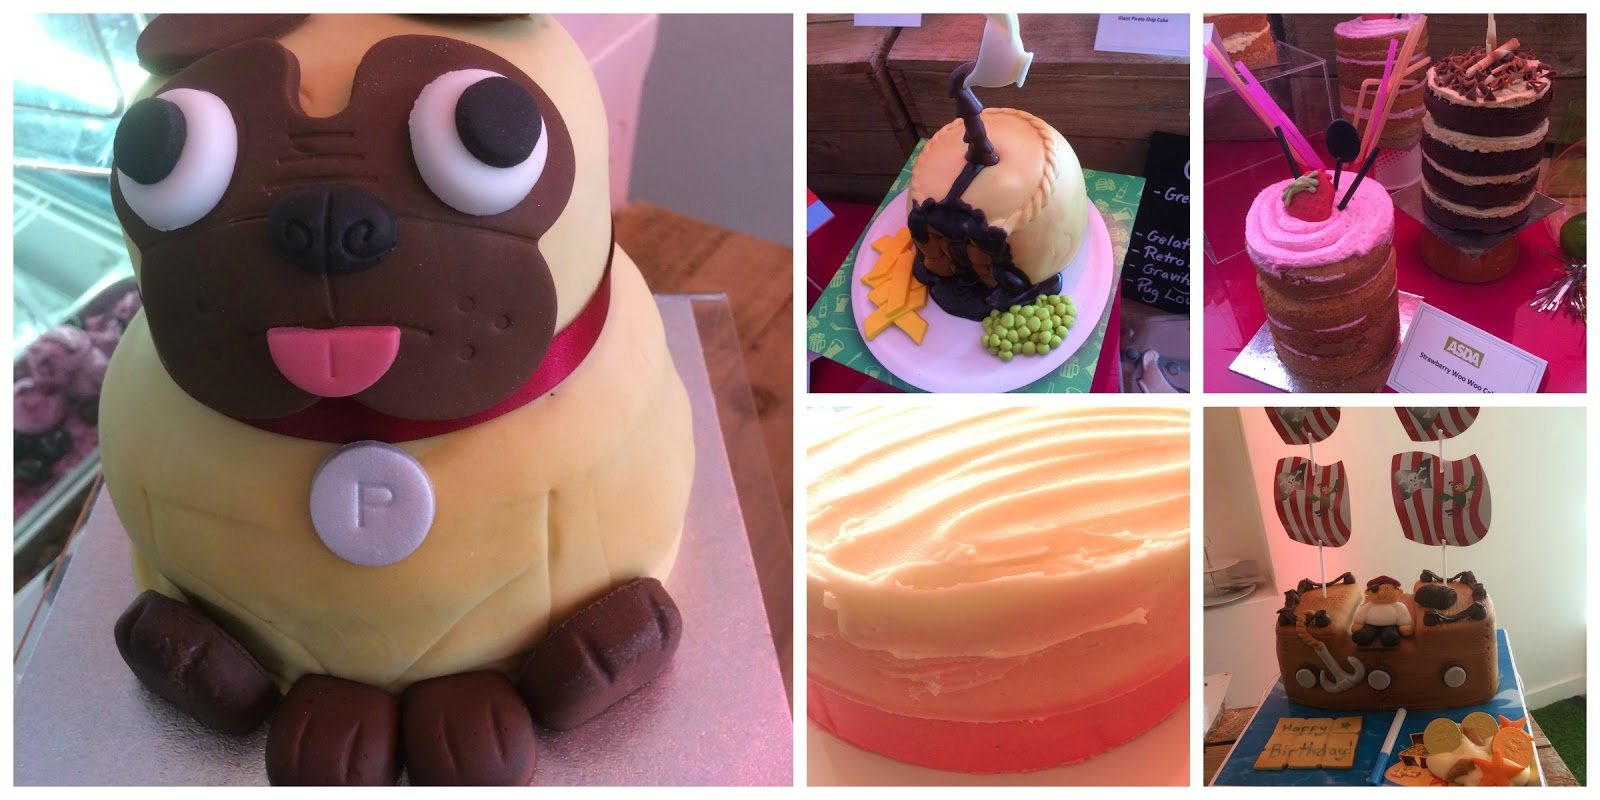 asda cakes pug cake, cocktail cake, pirate cake, ombre cake, gravity defying cake